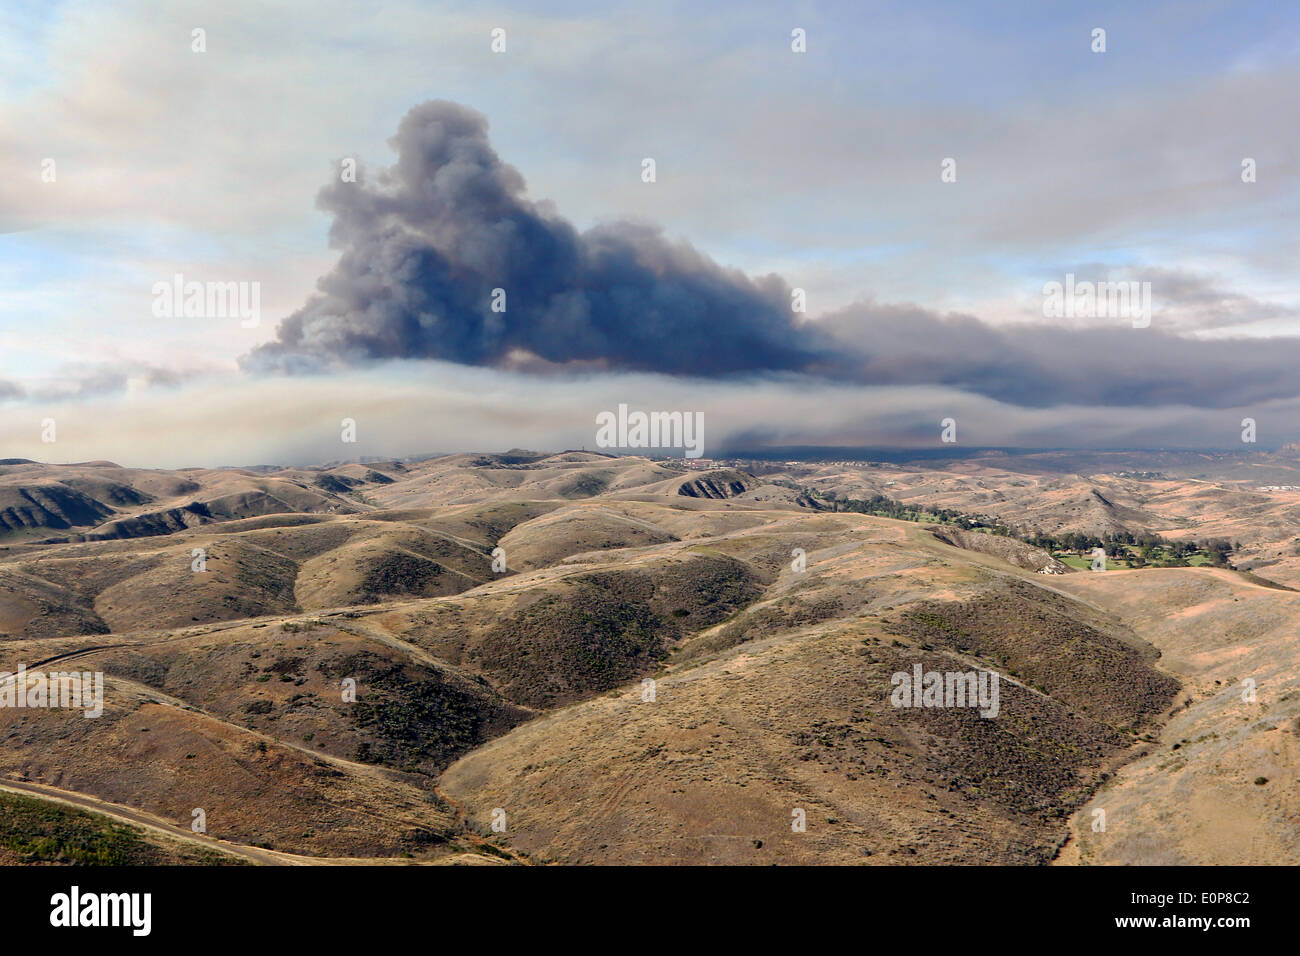 Smoke rises over the drought stricken foothills as the Tomahawk wildfire continues to burn May 16, 2014 around Camp Pendleton, California.  Evacuations forced more than 13,000 people from their homes as the fire burned across San Diego County. - Stock Image